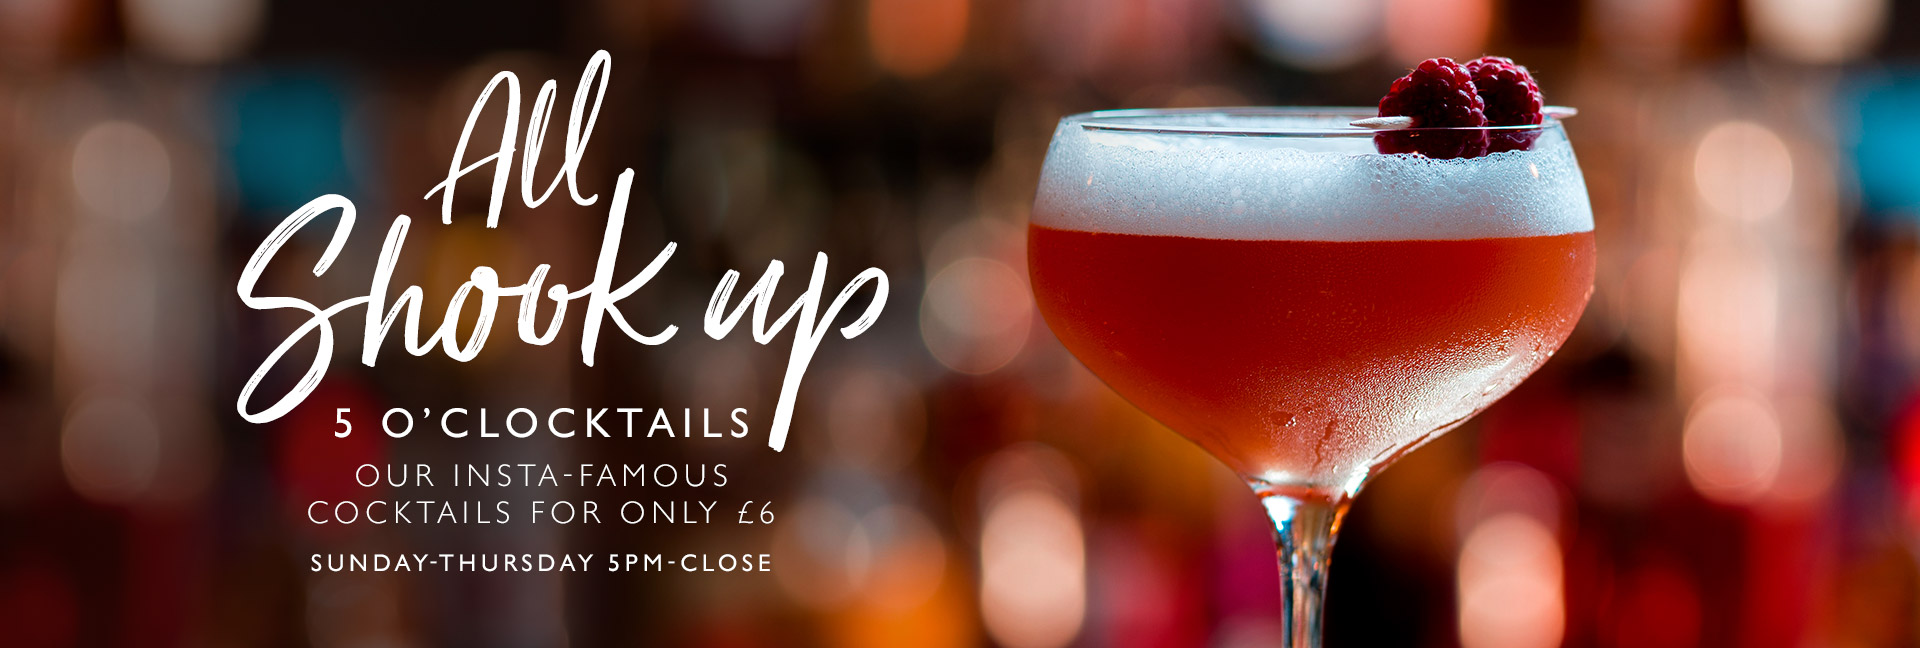 5 O'clocktails at All Bar One Canary Wharf - Book now